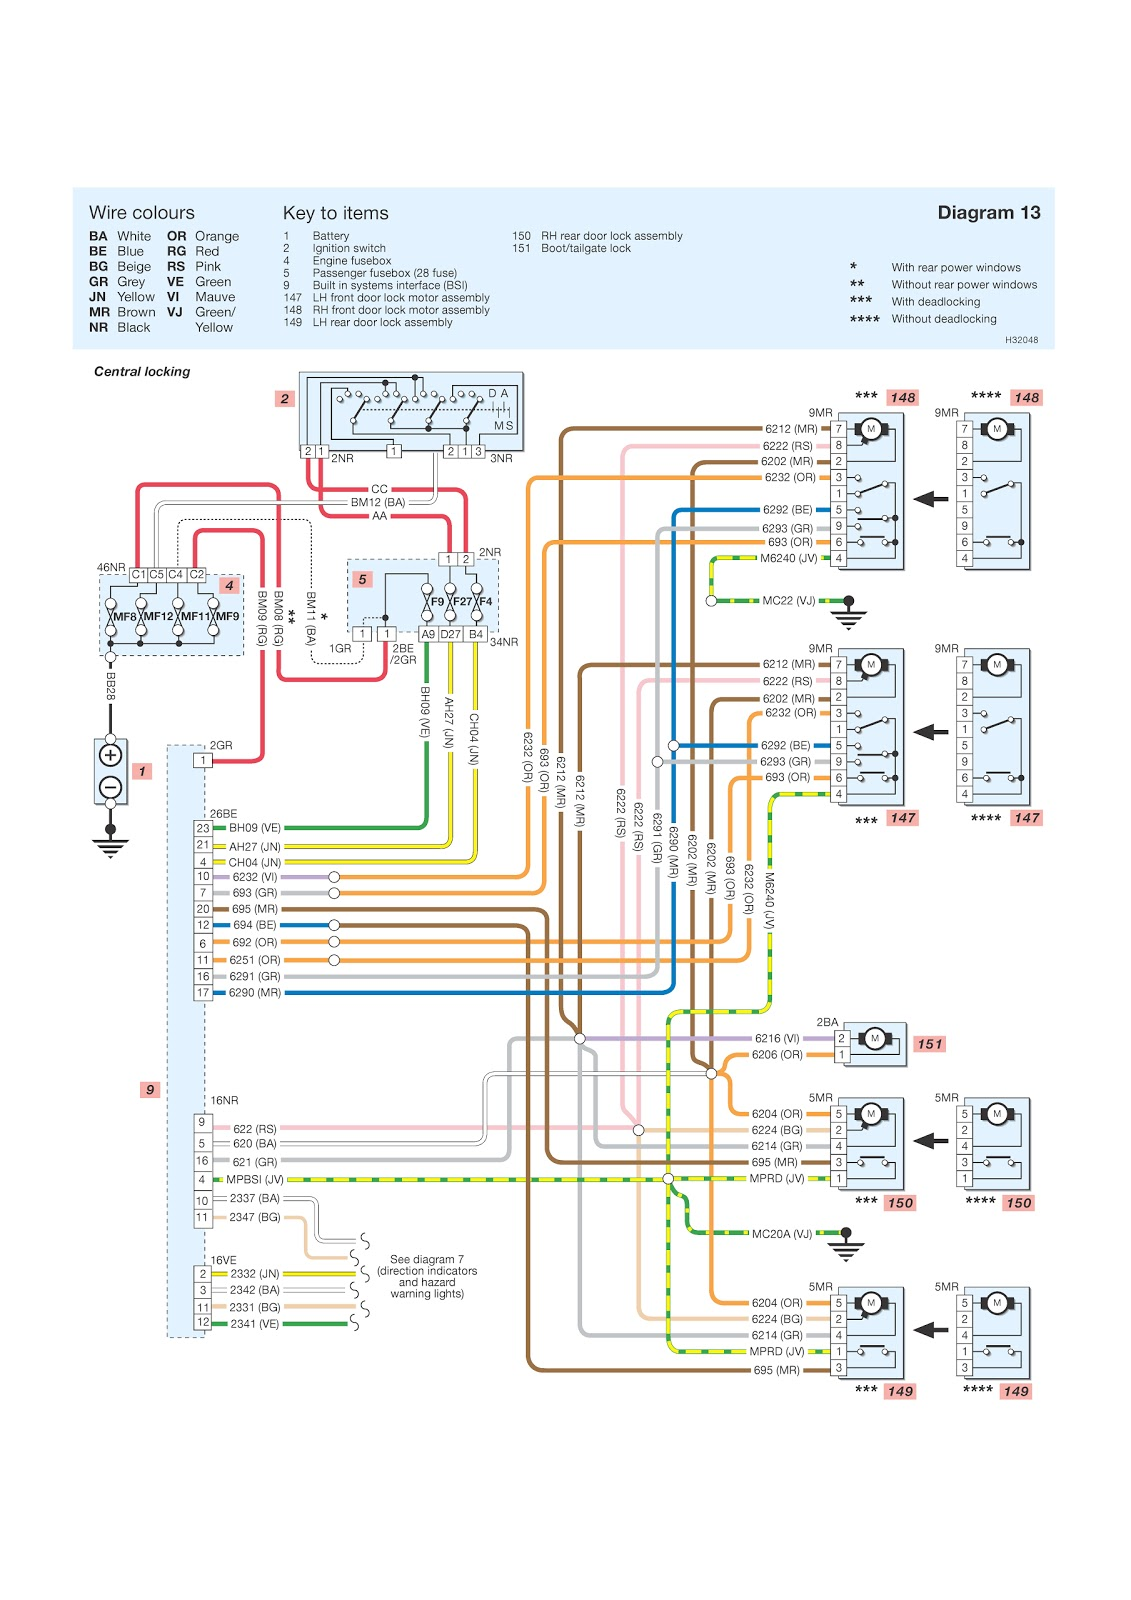 Peugeot 206 Wiring Diagrams Central Locking | Schematic